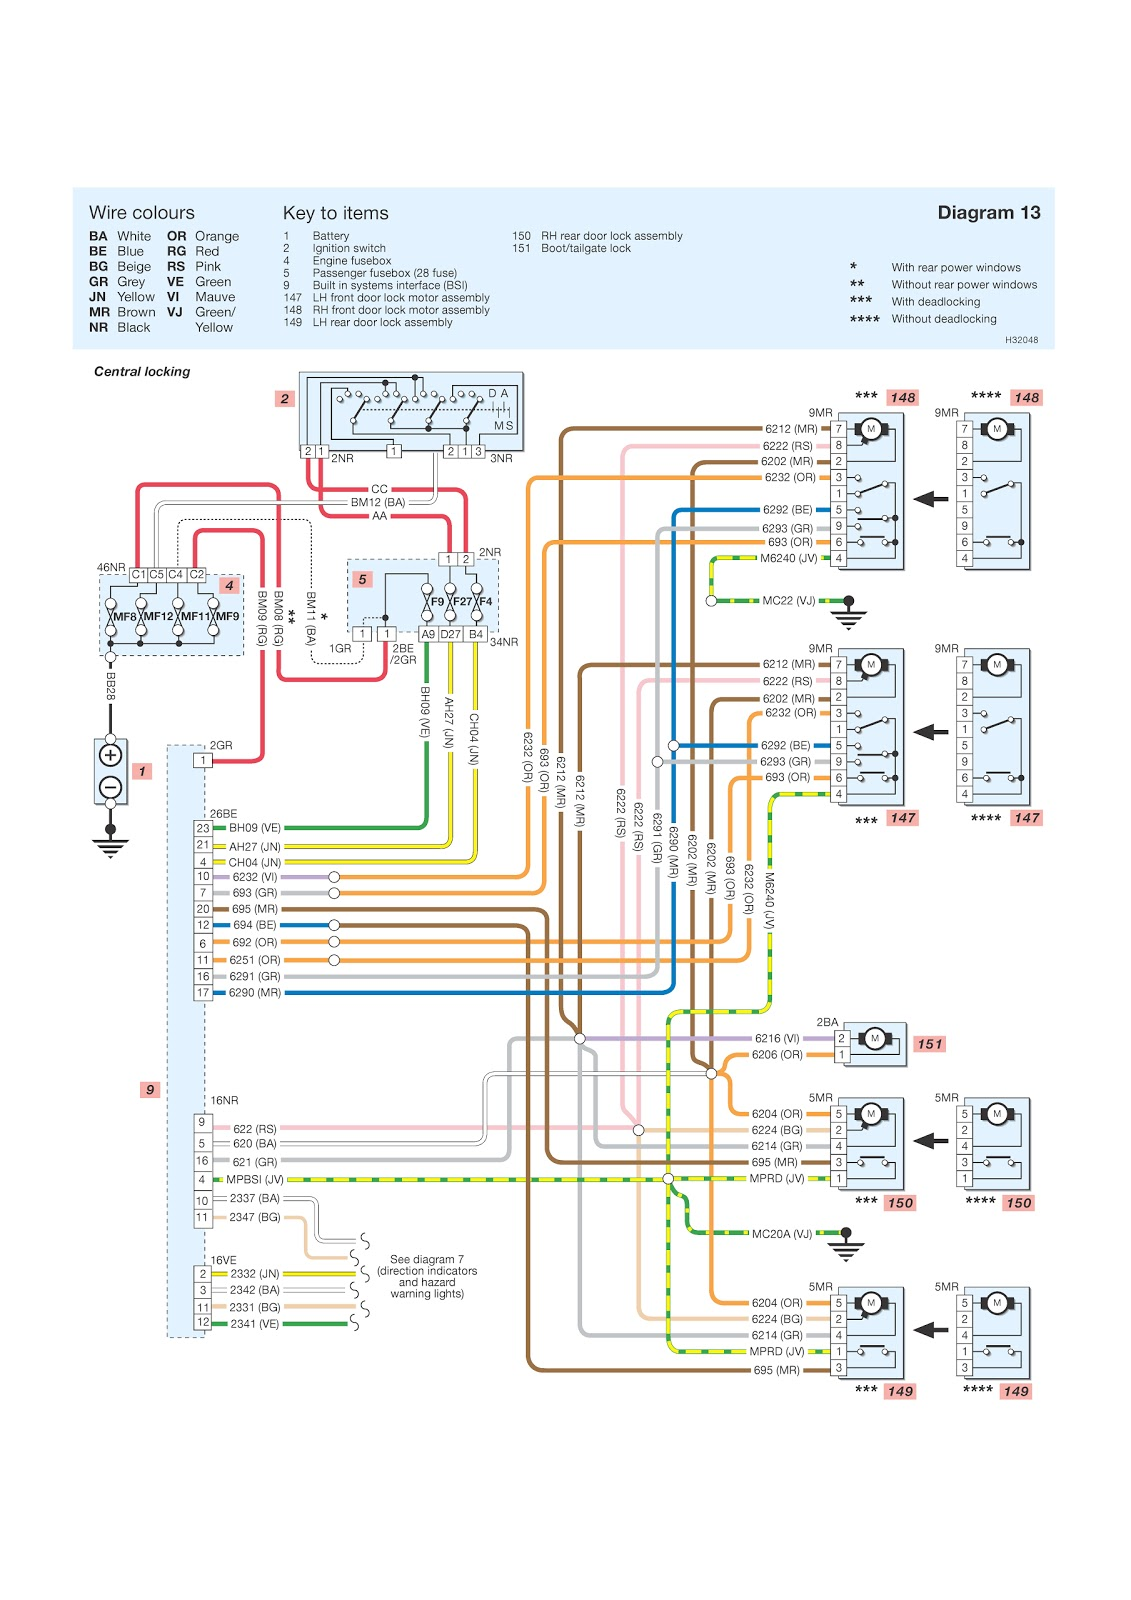 Peugeot 206 Wiring Diagrams Central Locking | Schematic